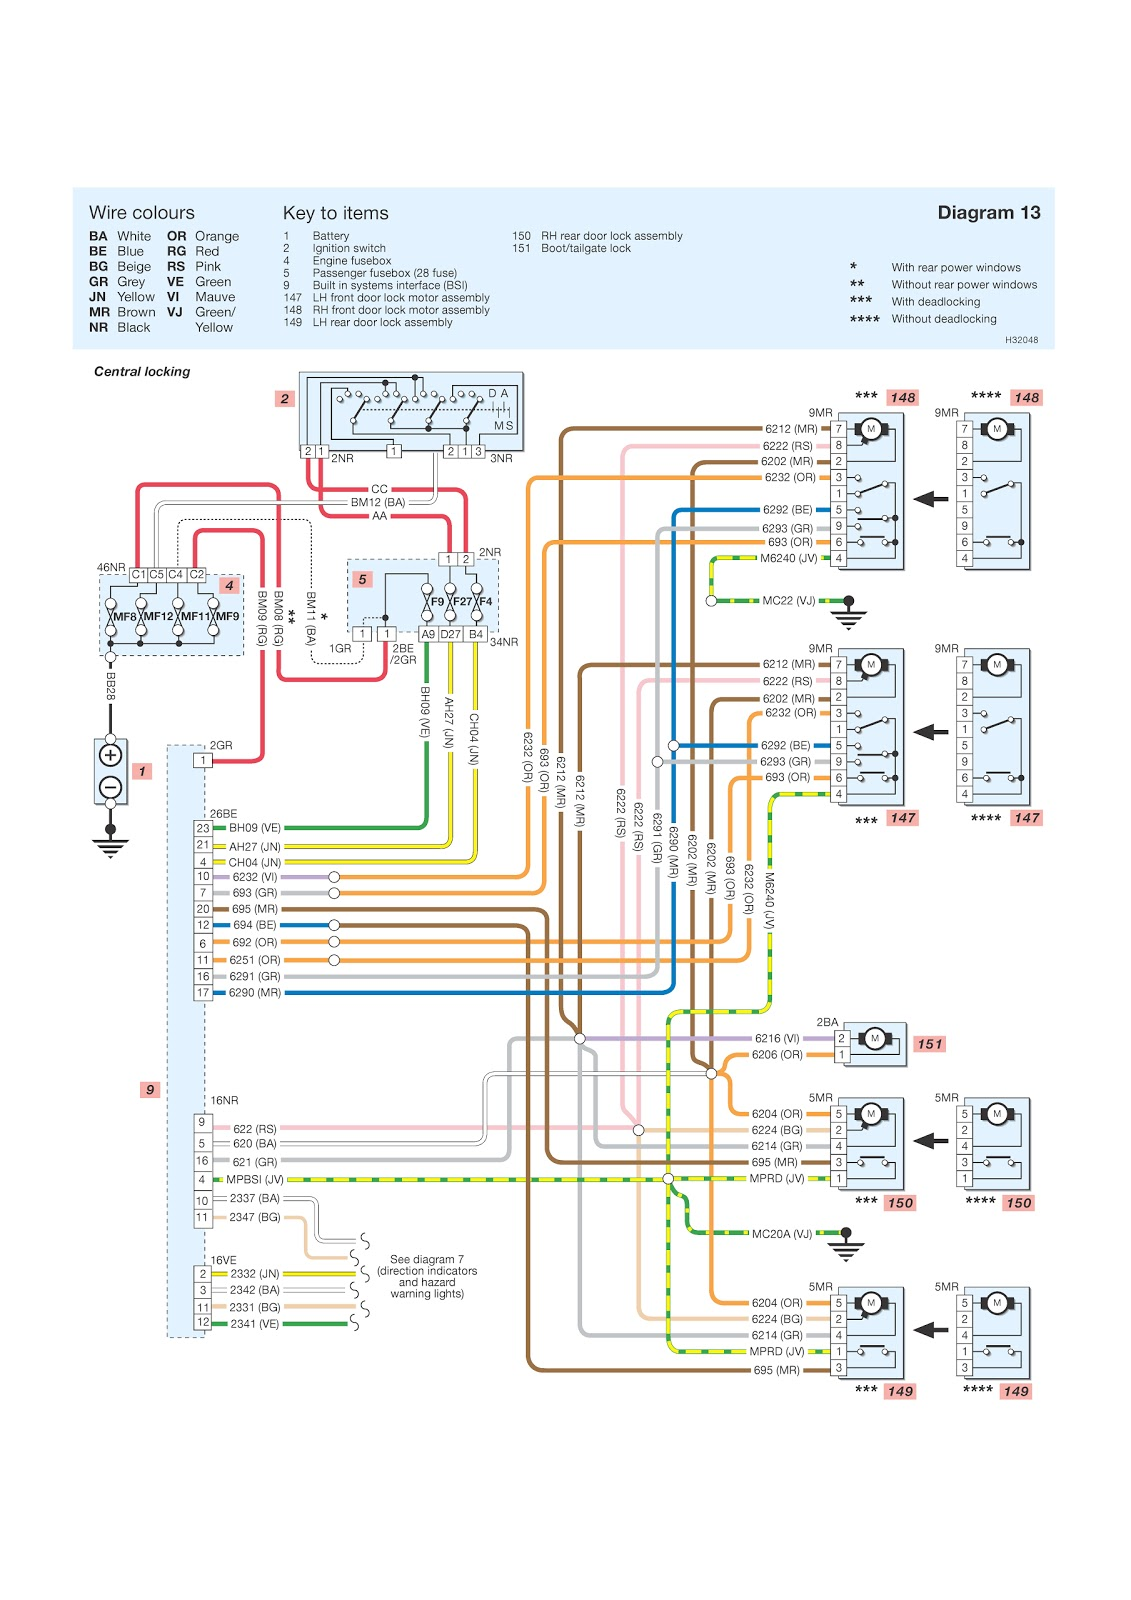 Peugeot 206 Wiring Diagrams Central Locking | Schematic